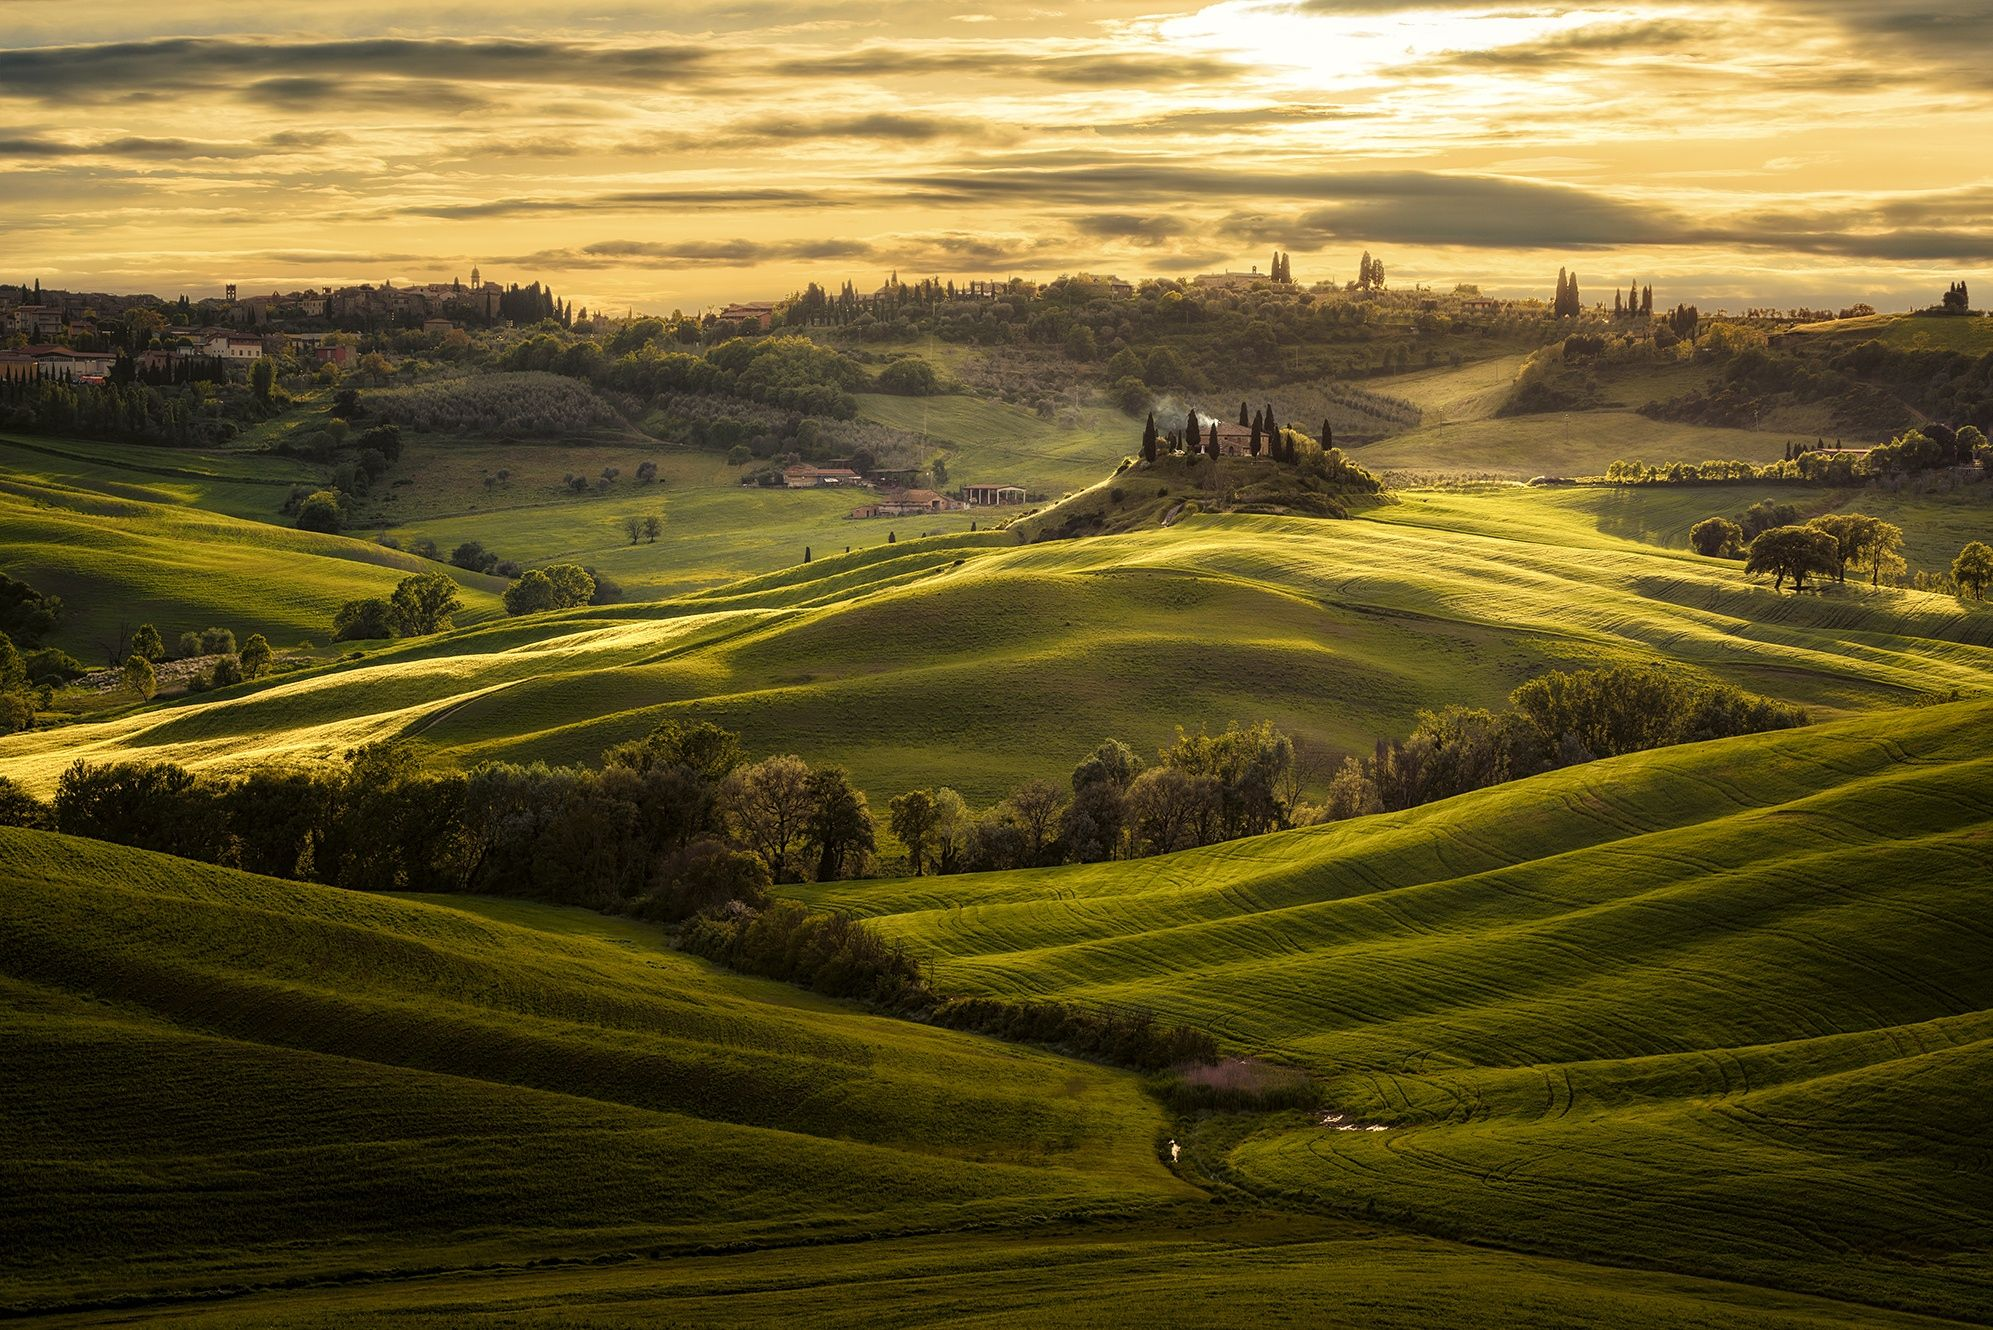 """RIPPLES"" by Mr Friks Colors. https://500px.com/photo/97427721/ripples-by-mr-friks-colors Italy, Tuscany"